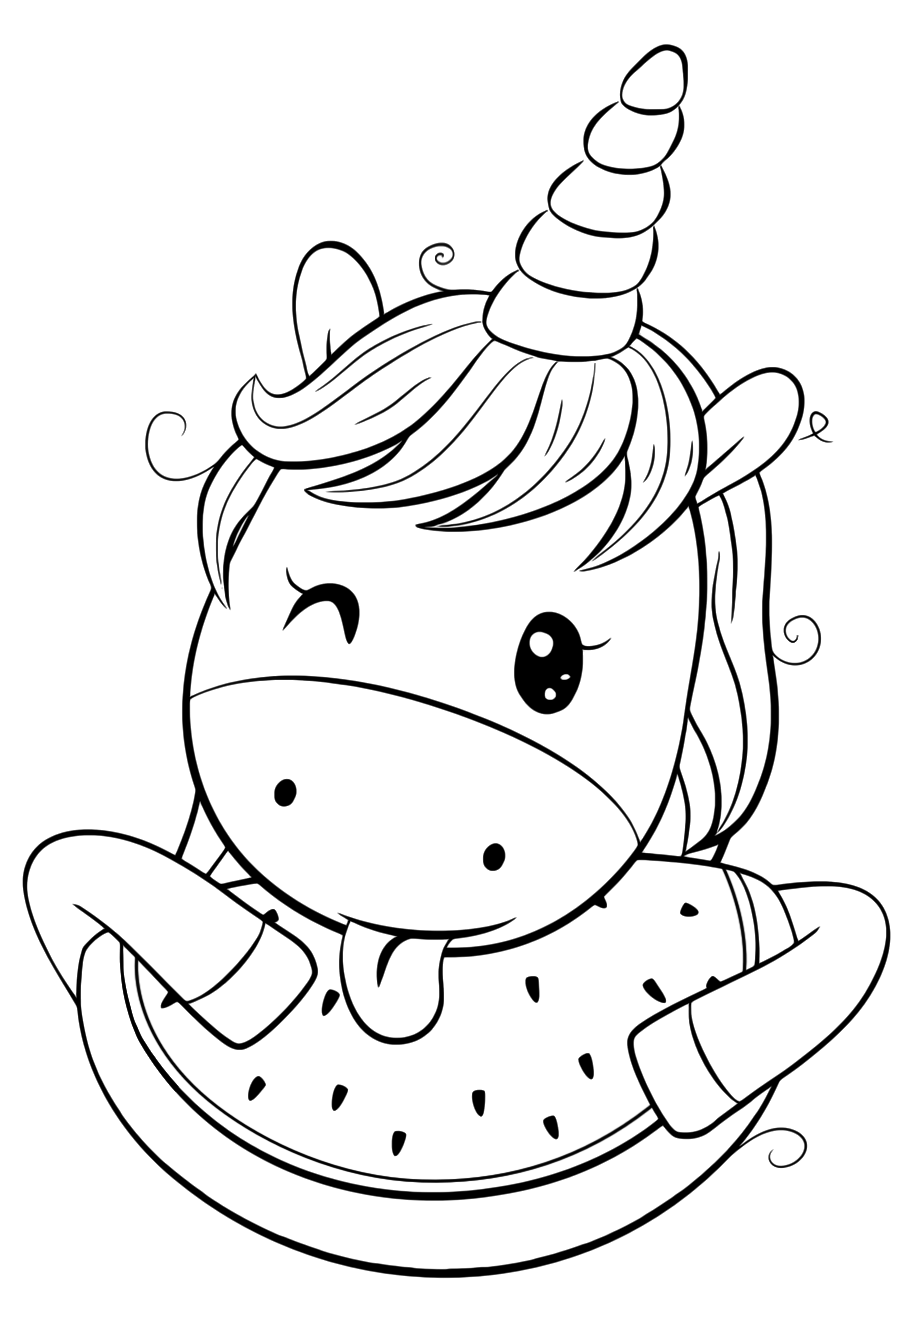 unicorn printables free printable unicorn coloring pages for kids unicorn printables